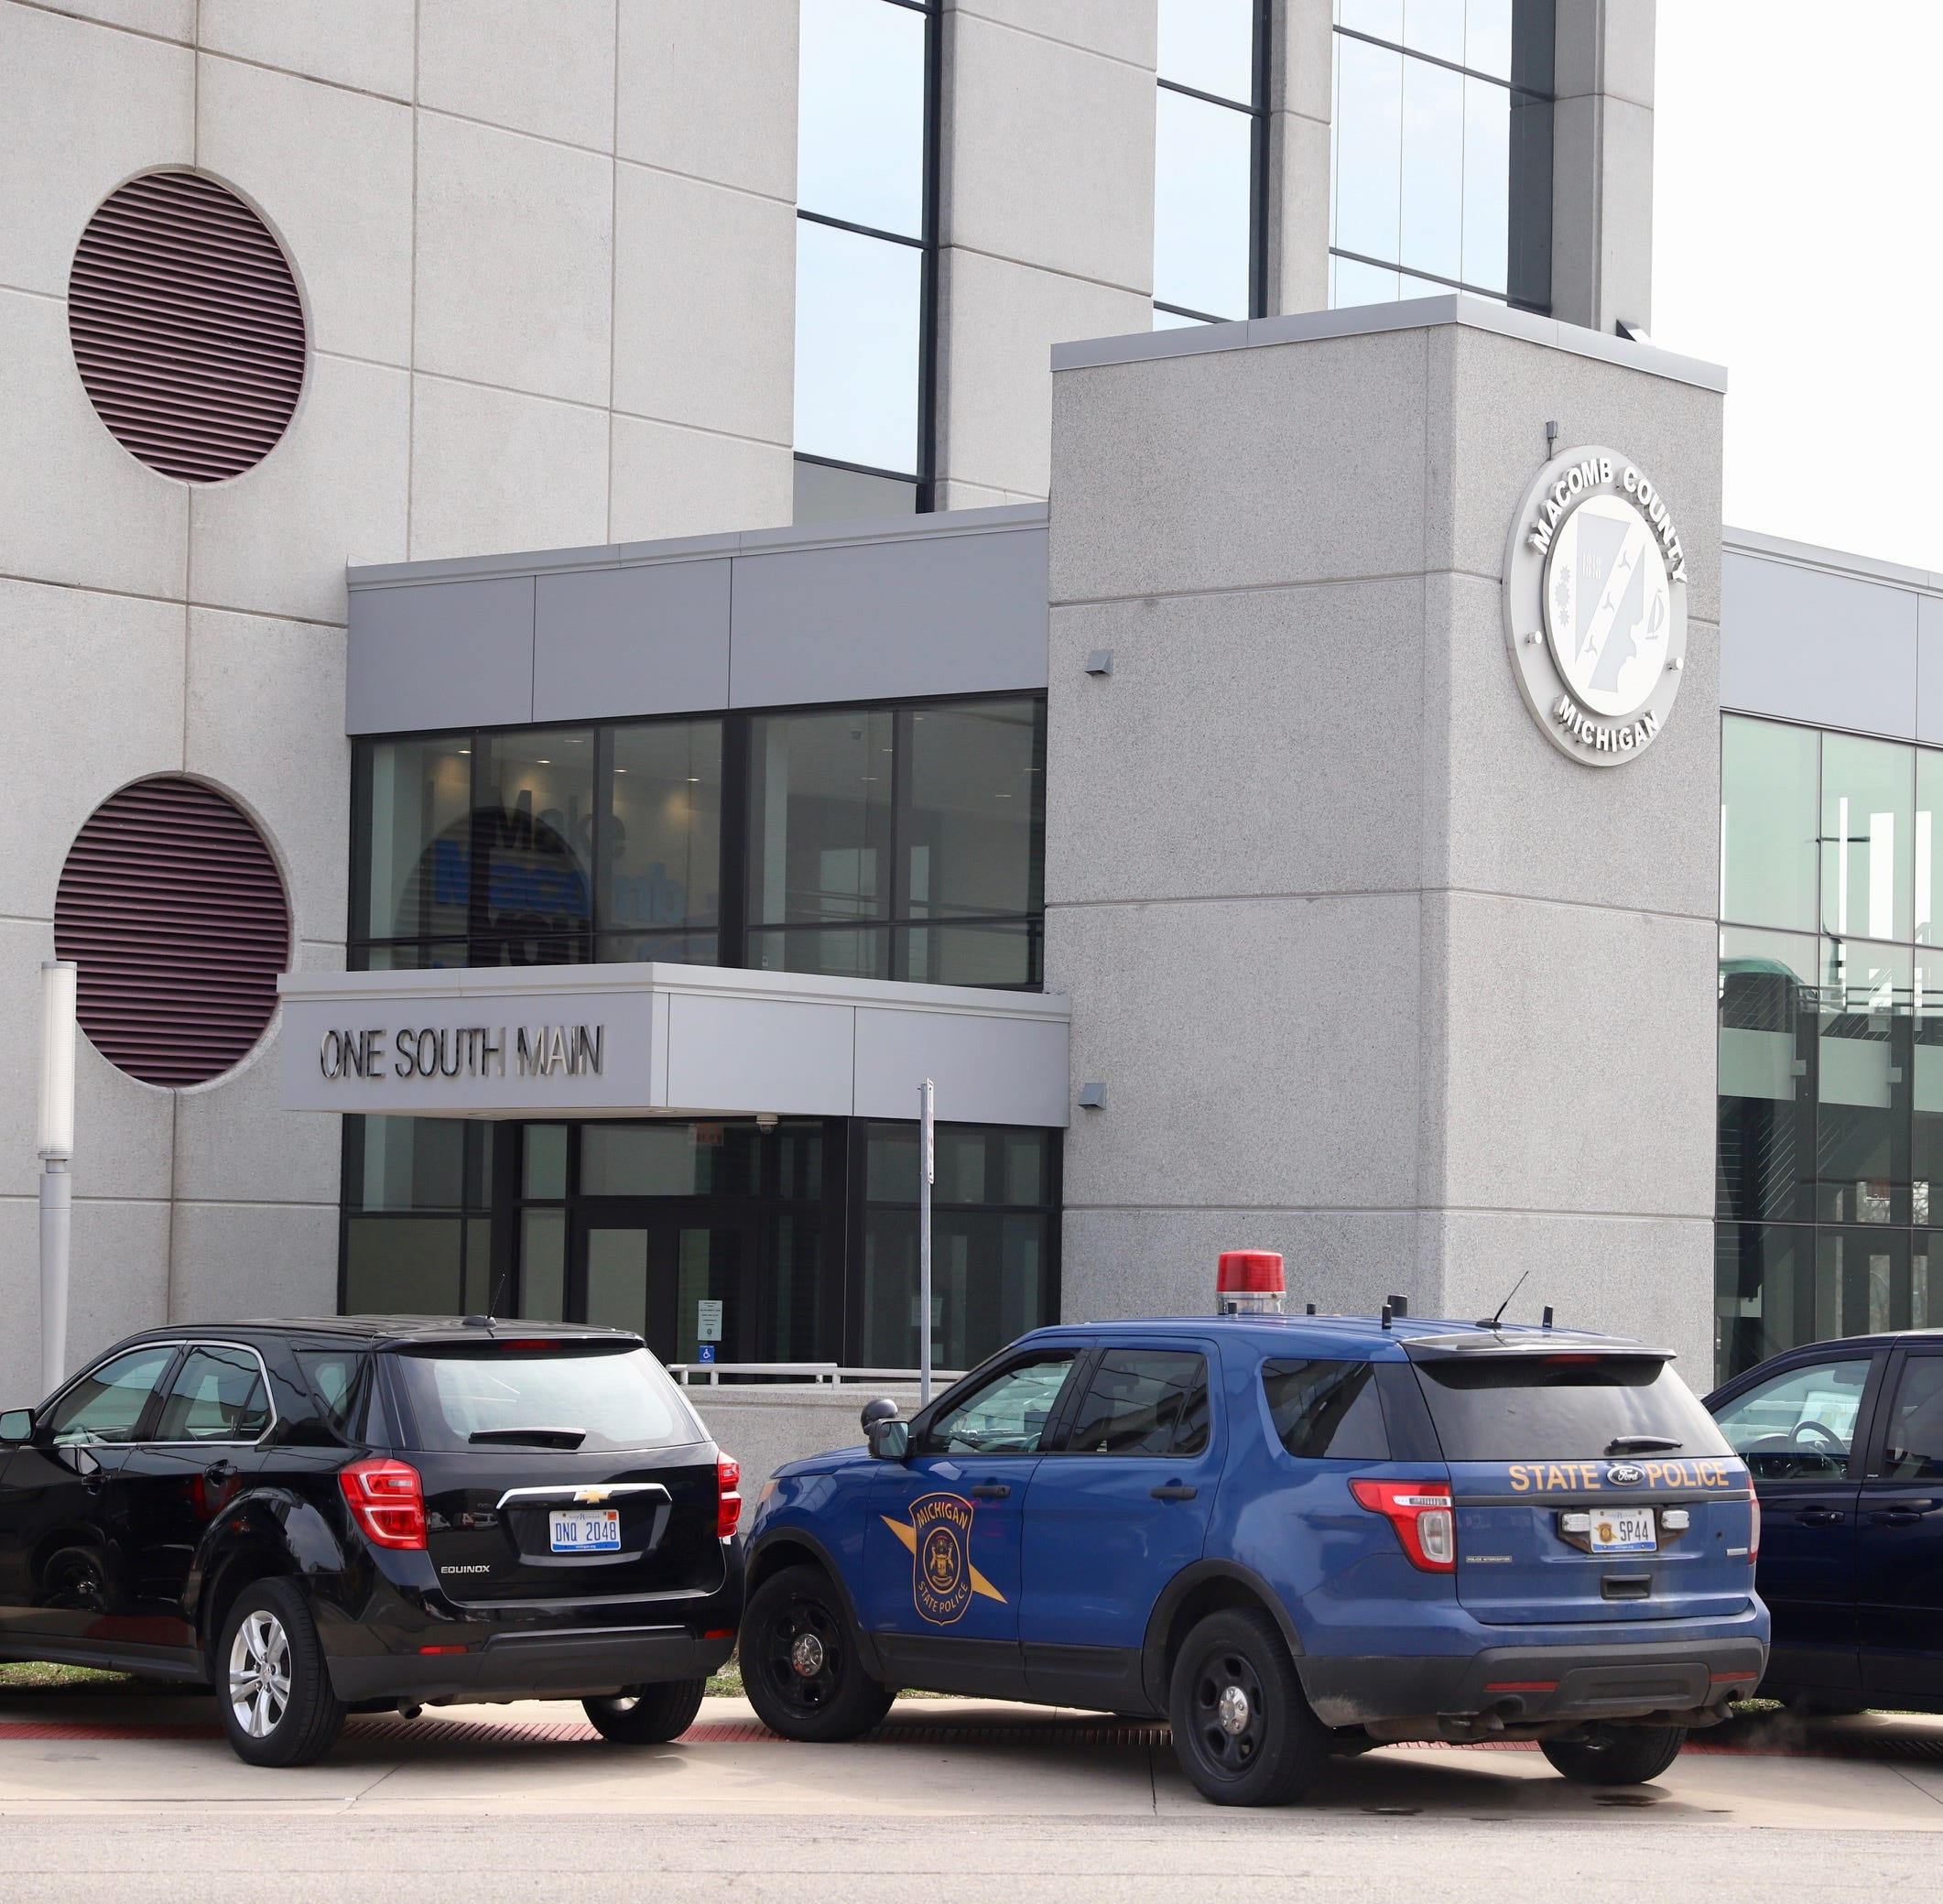 Investigators seize records from Macomb County prosecutor's office